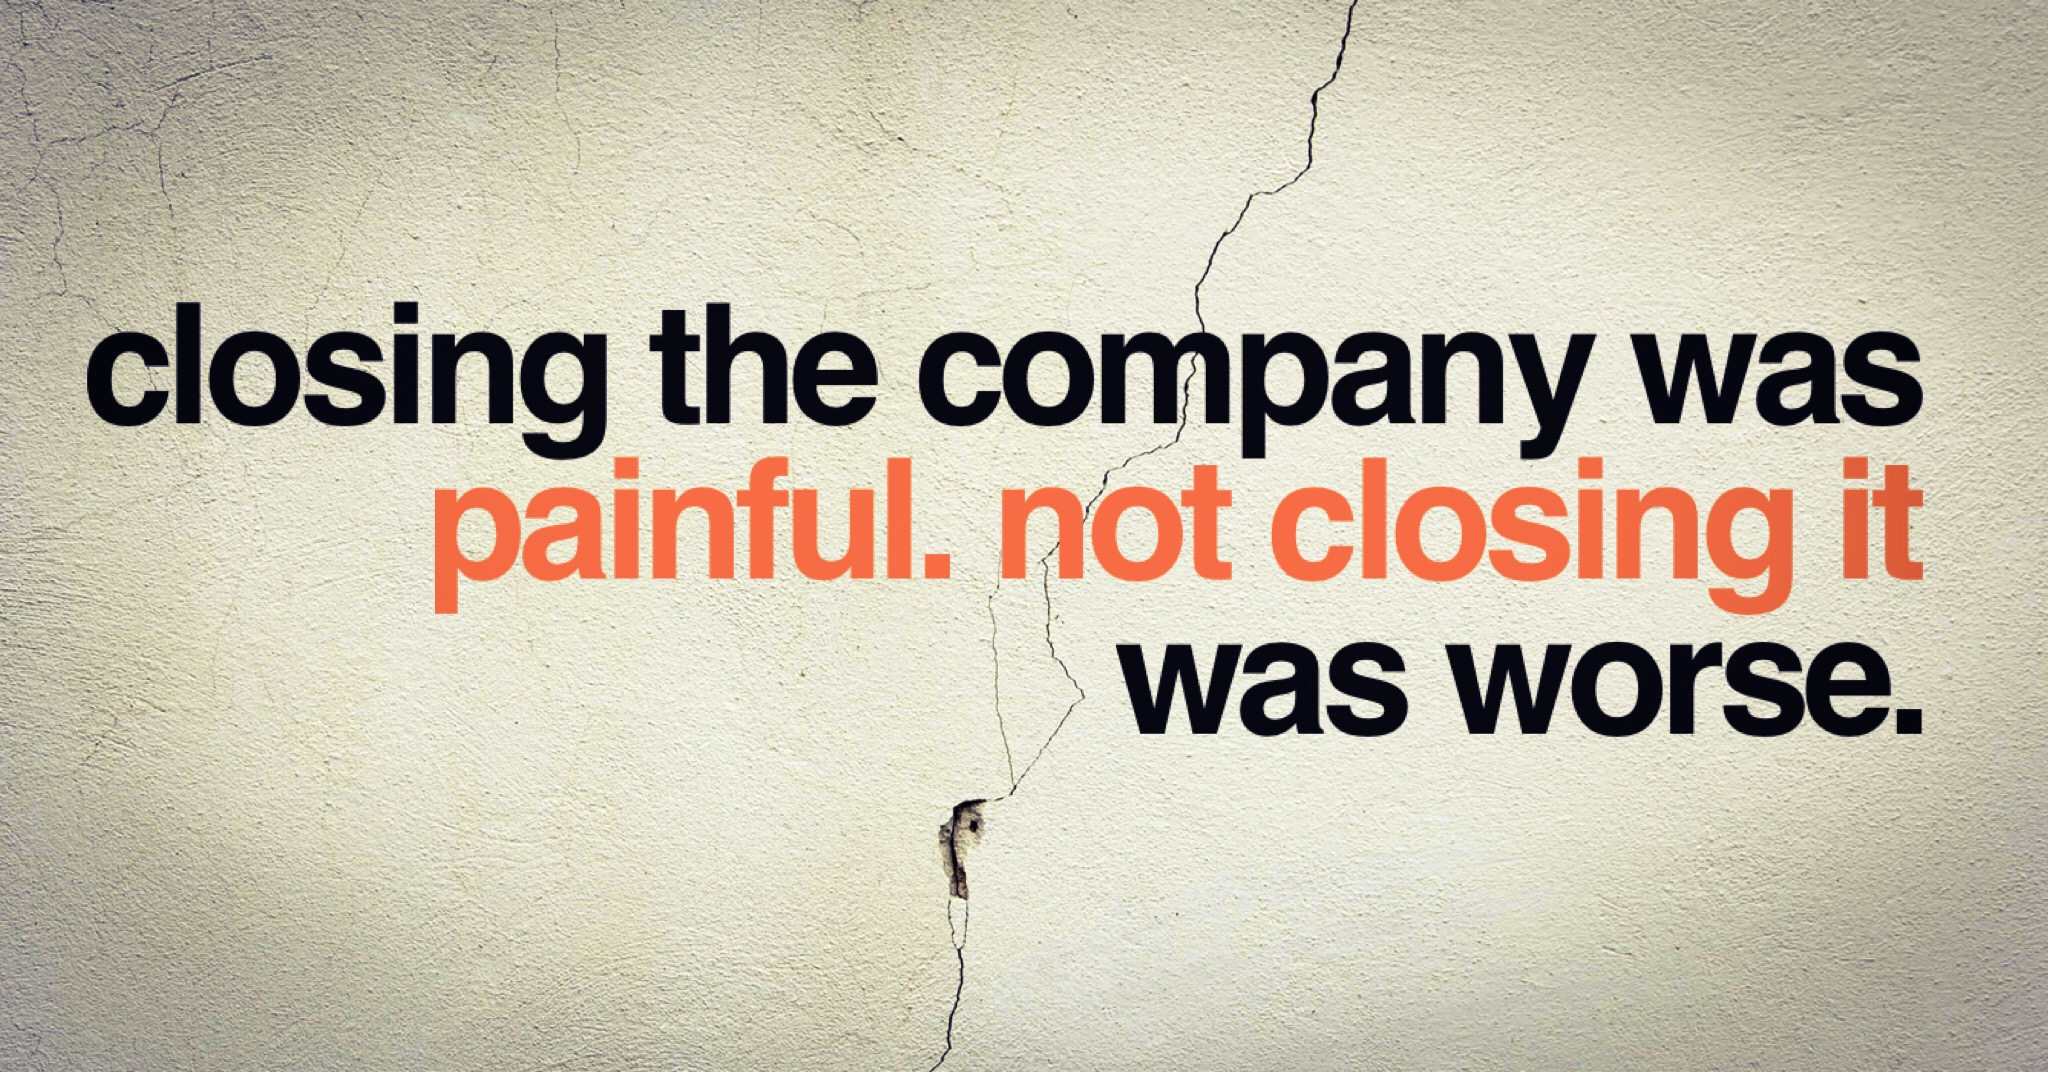 Closing my company was painful